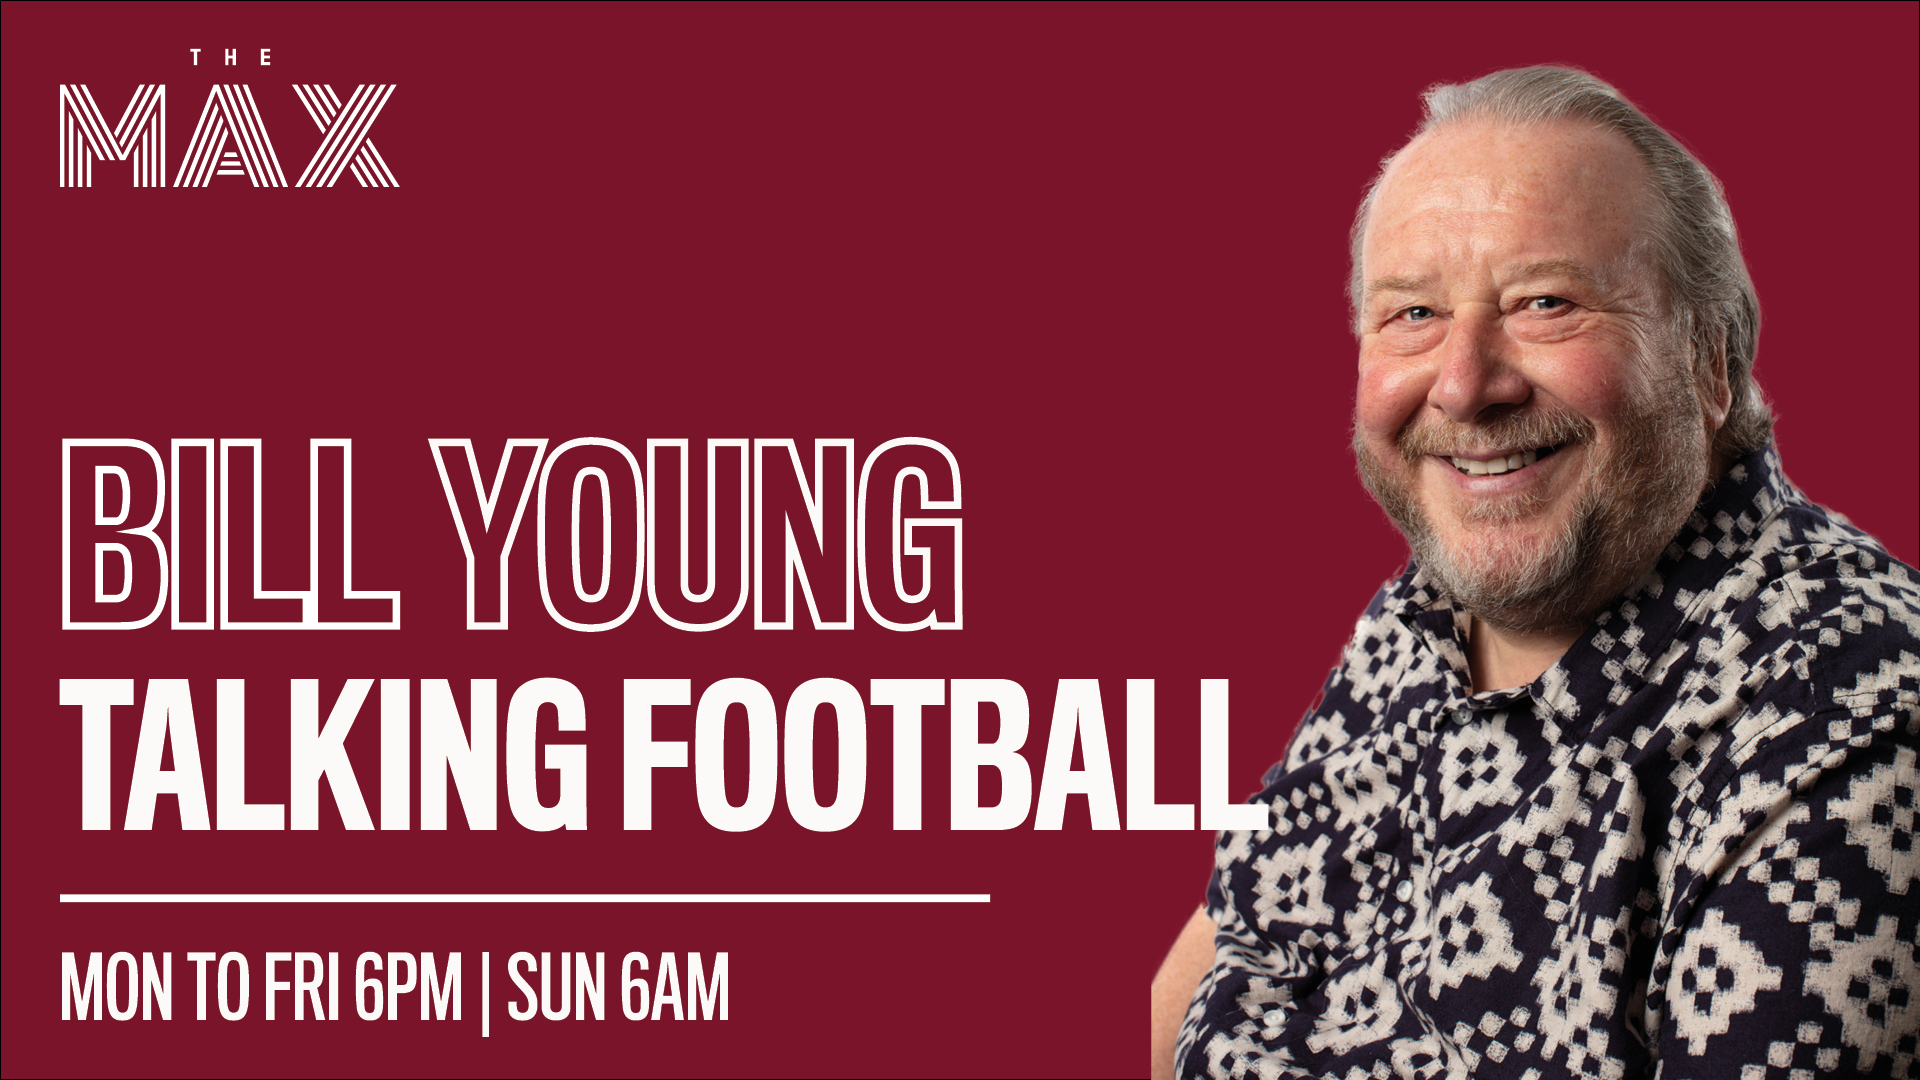 Talking Football with Bill Young